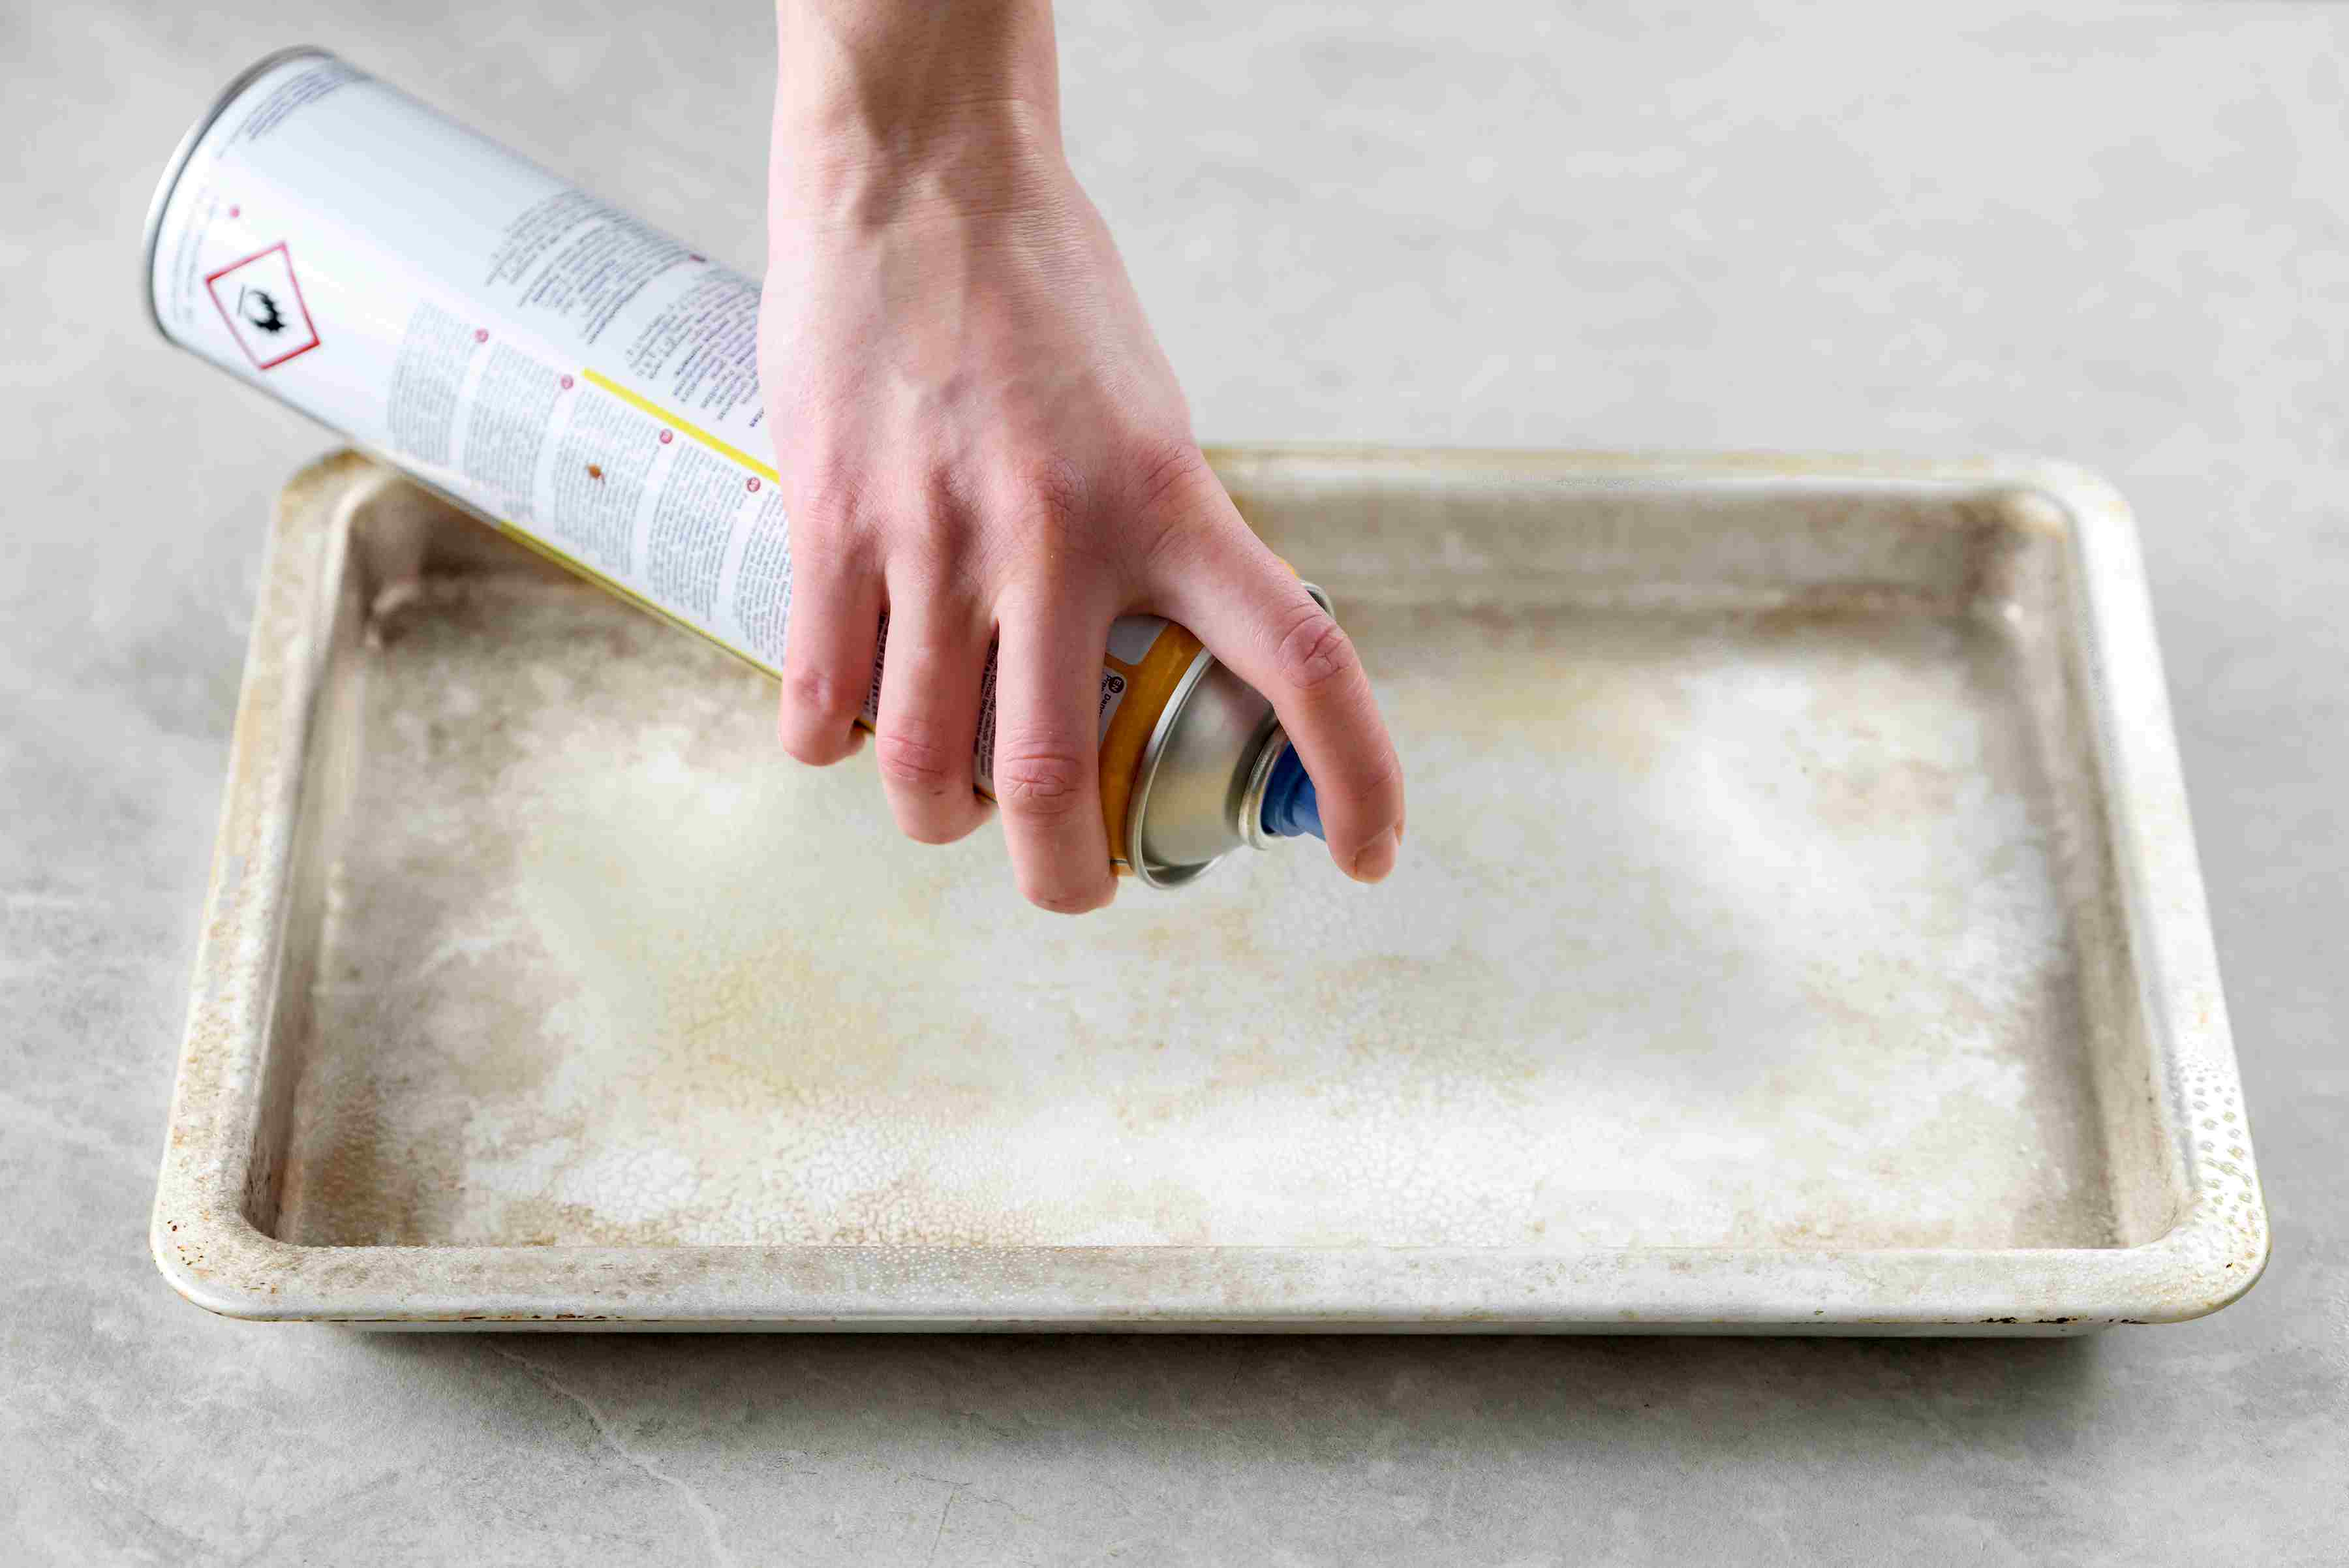 Baking tray coated with nonstick spray